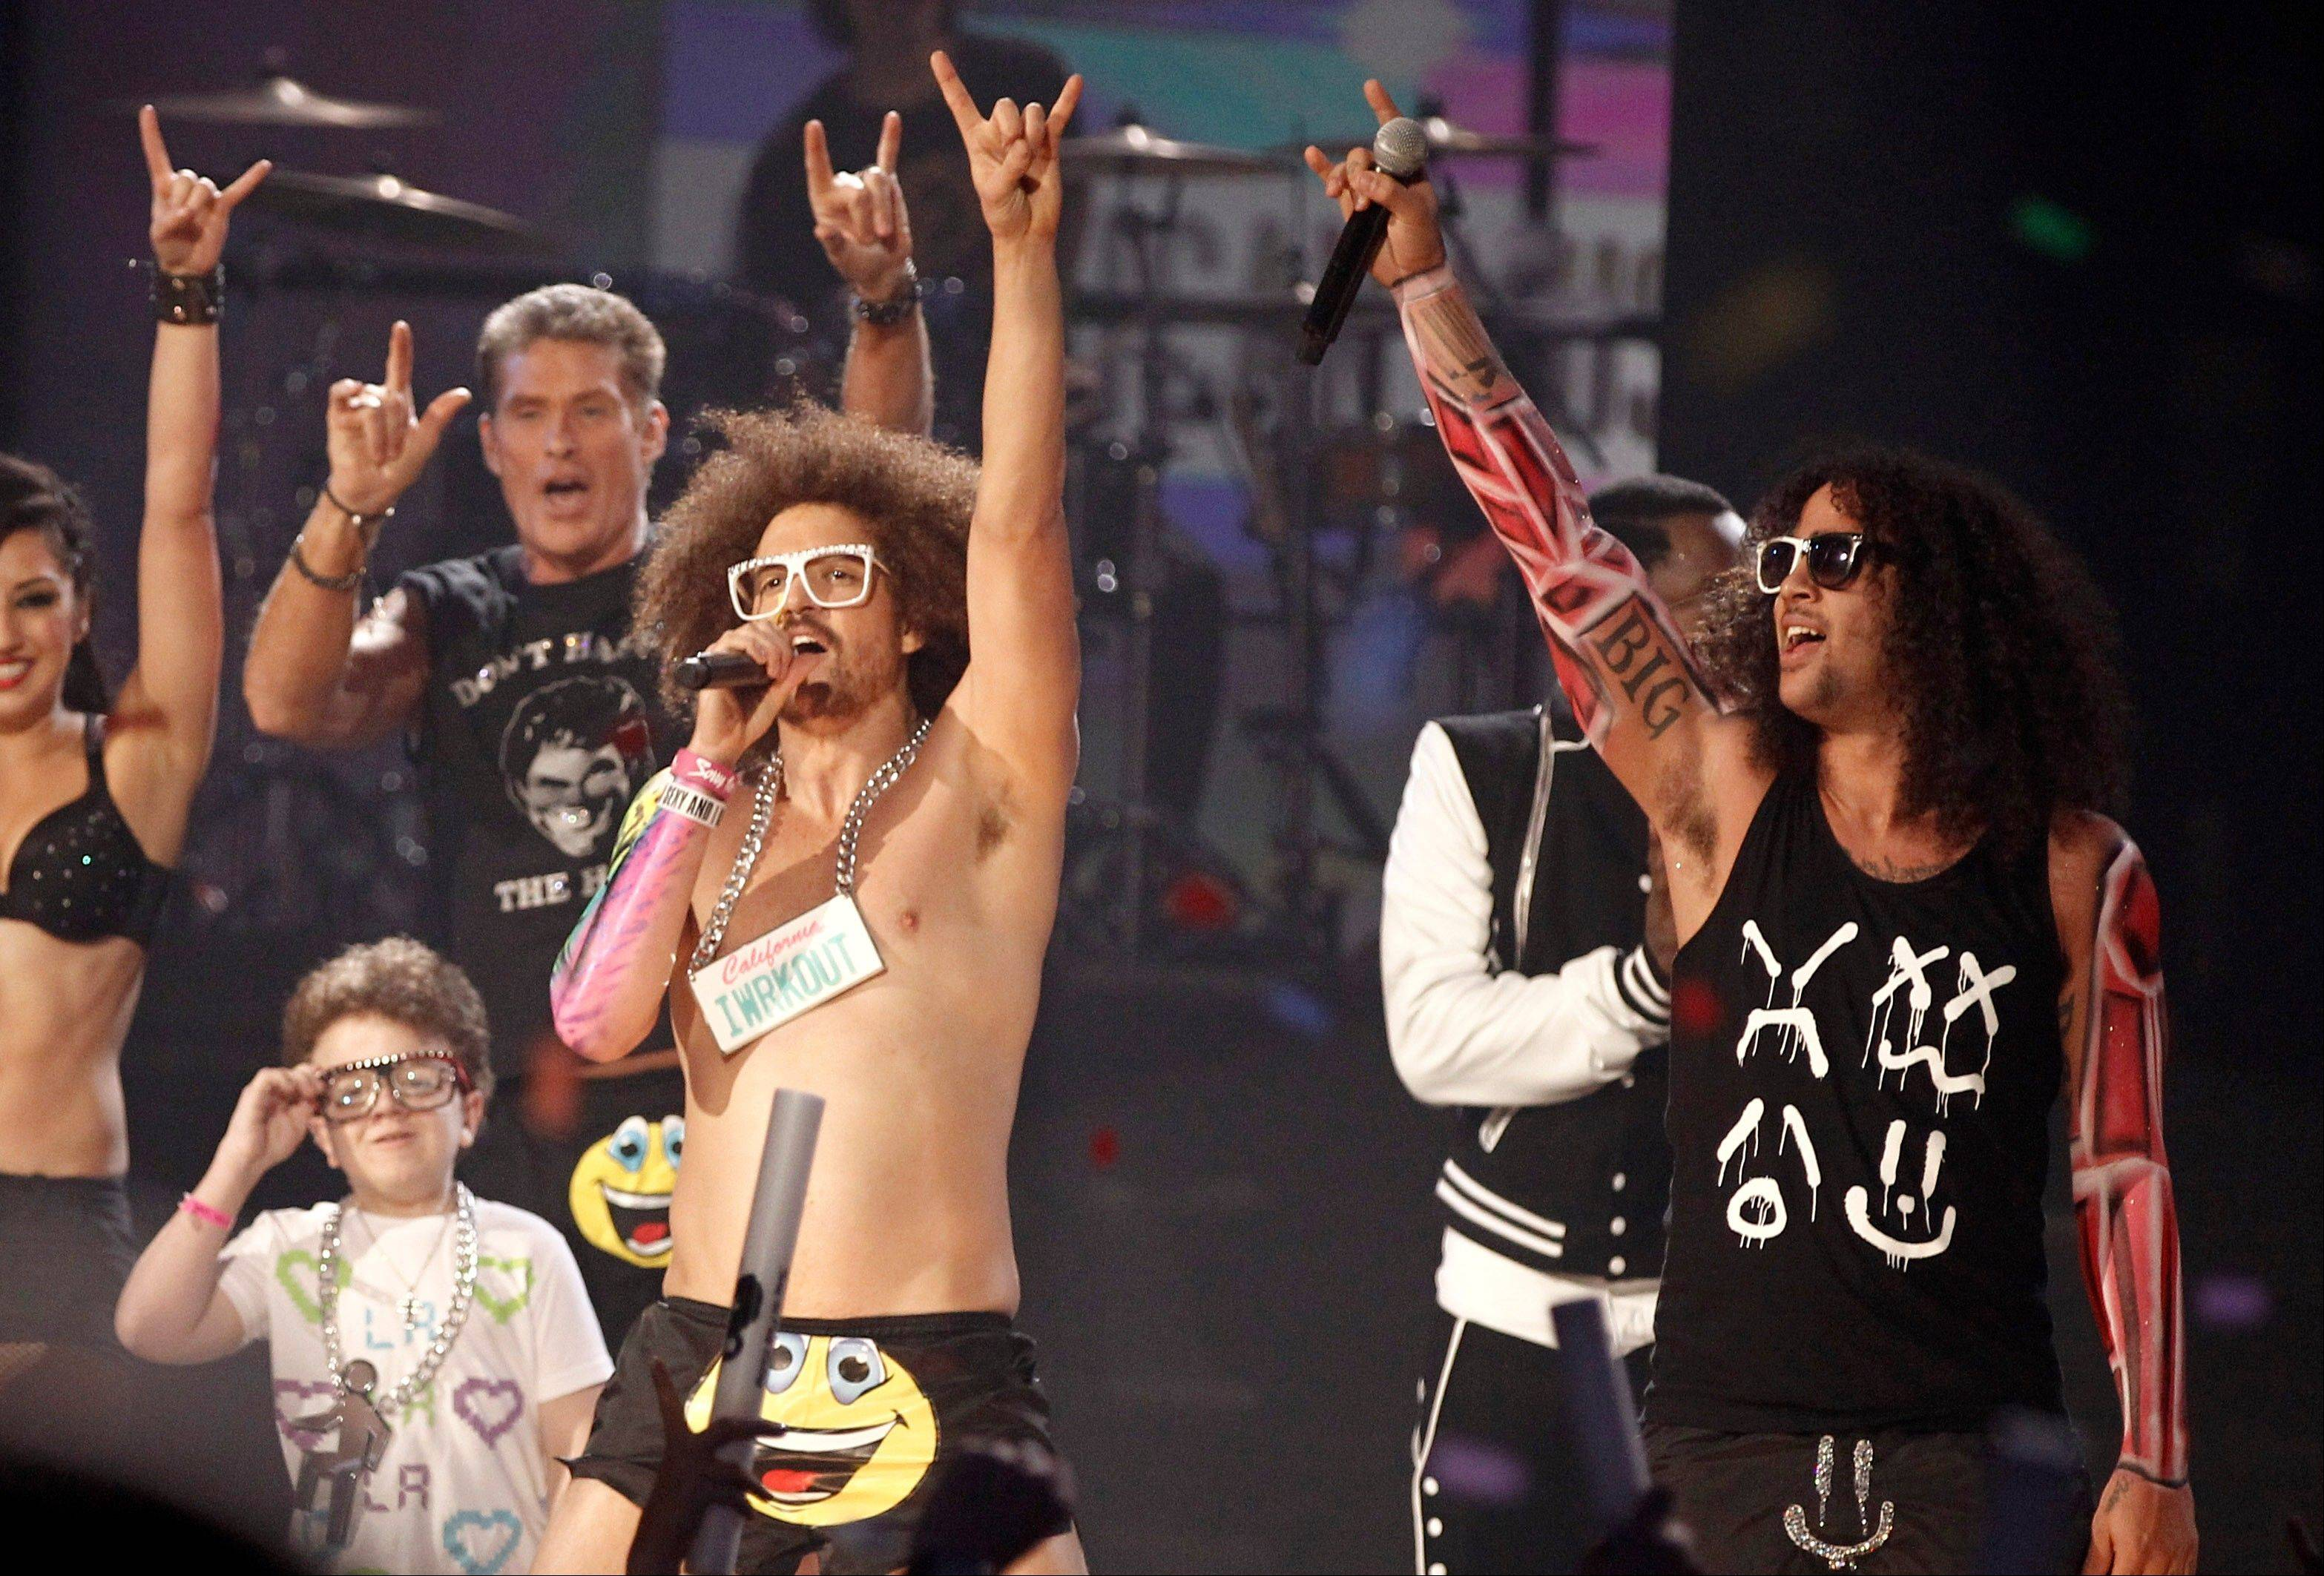 Keenan Cahill and David Hasselhoff are seen onstage as Redfoo and SkyBlu of the music group LMFAO perform onstage at the 39th Annual American Music Awards on Sunday, Nov. 20, 2011 in Los Angeles.